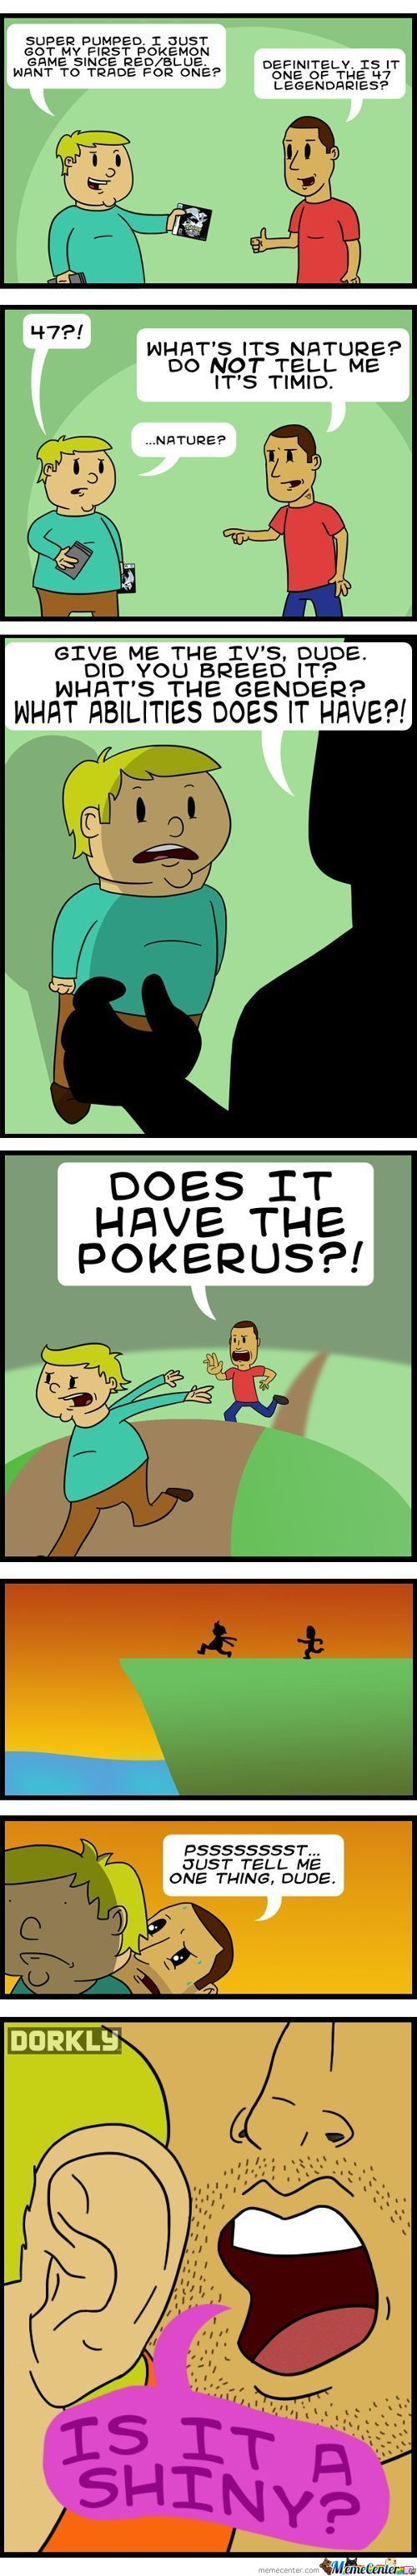 Pokeridiculous